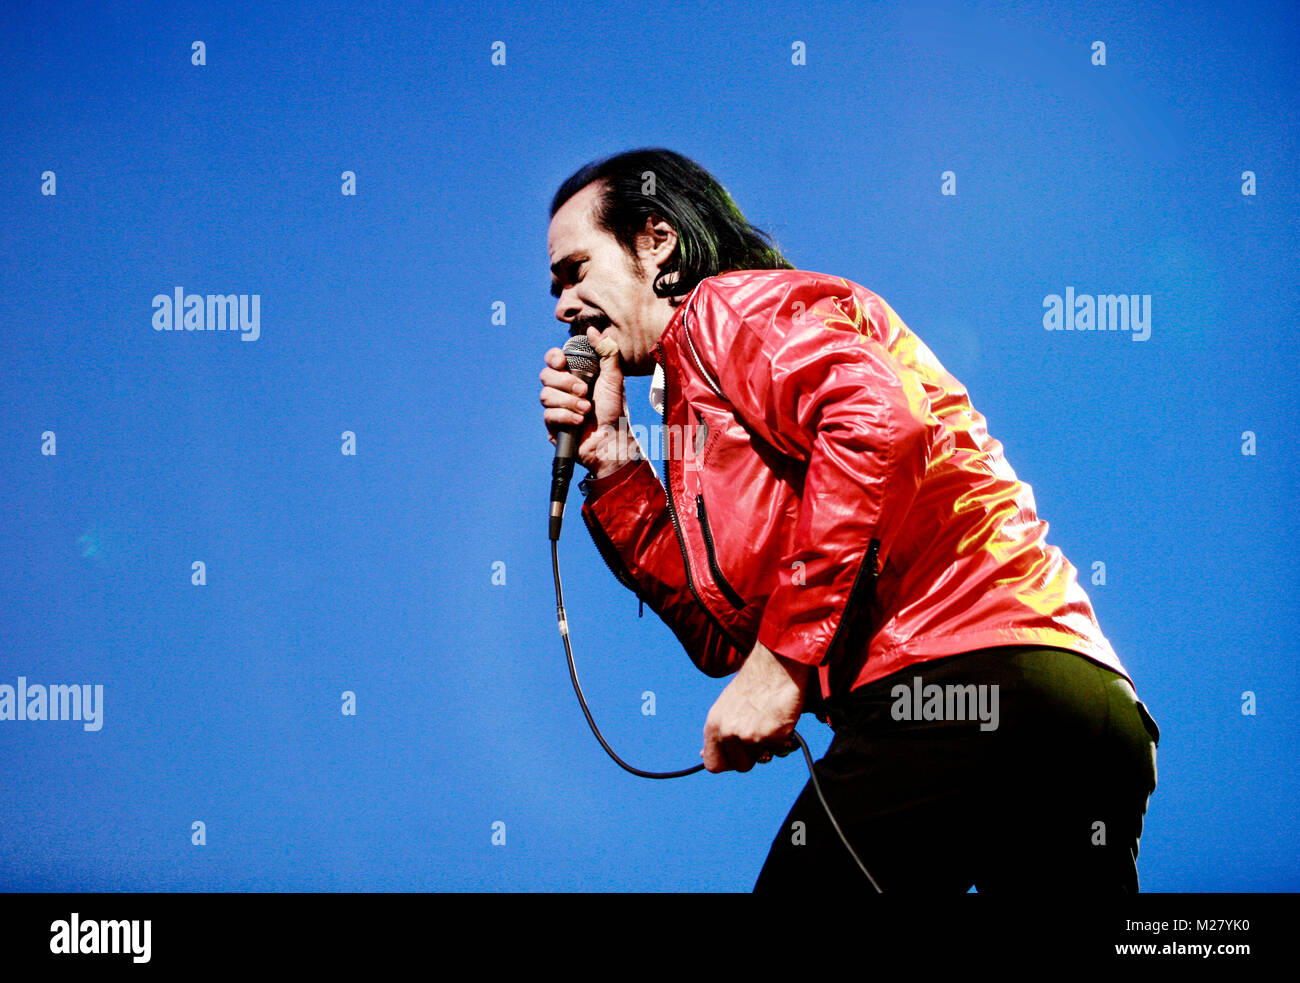 The alternative rock band Grinderman is here pictured with lead singer Nick Cave live on stage at a gig at Roskilde - Stock Image